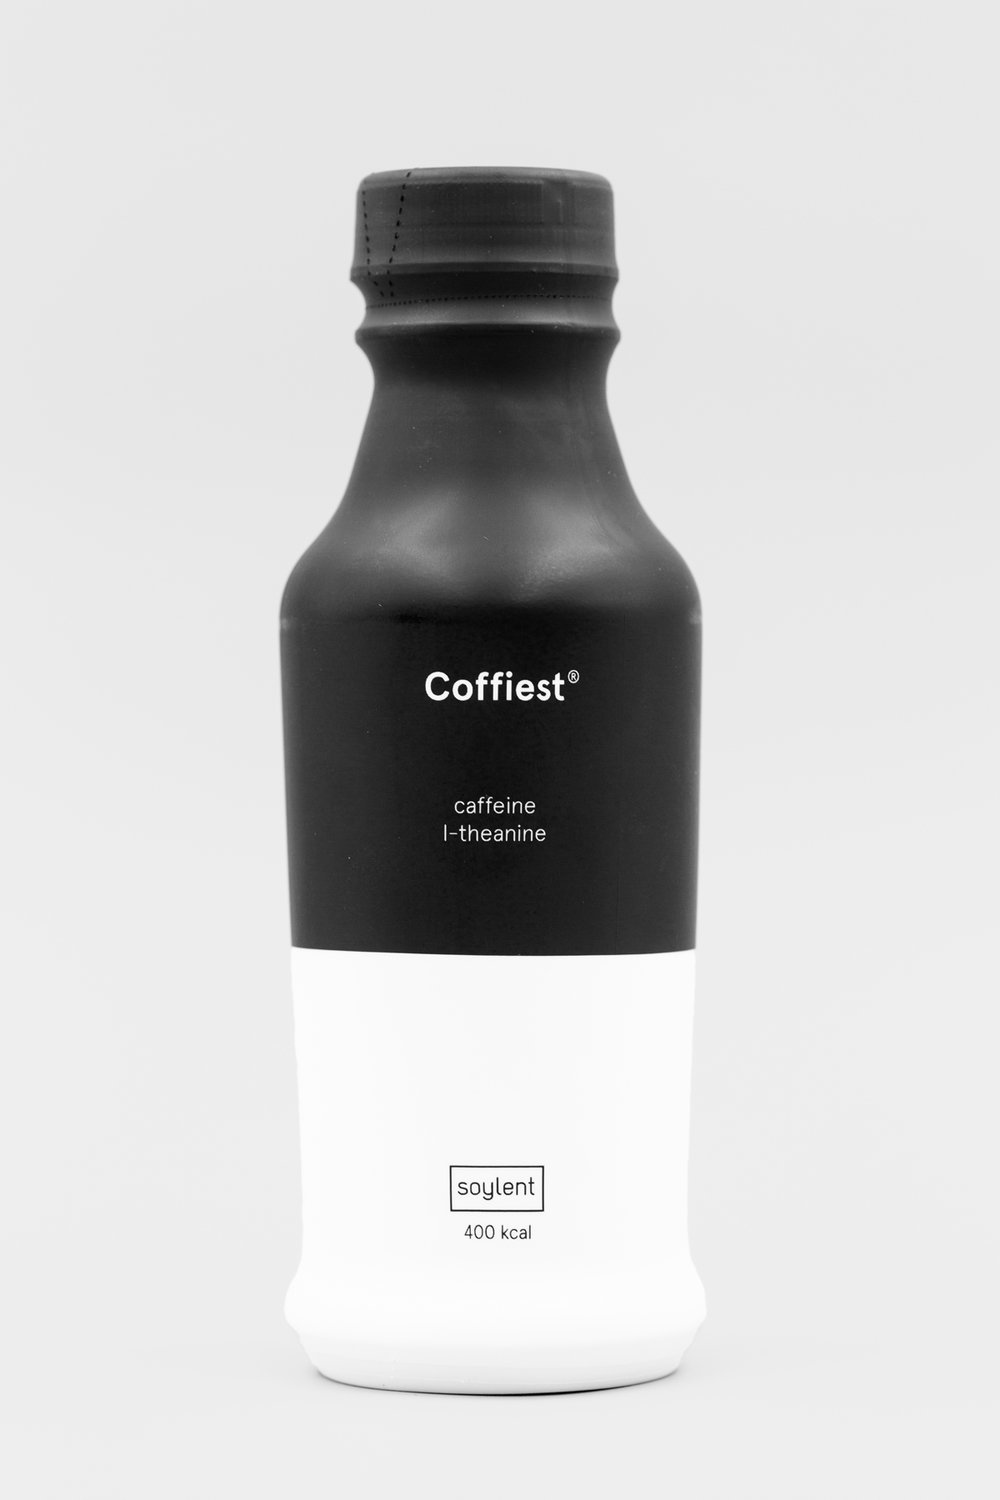 coffiest_bottle_5 copy (2).jpg